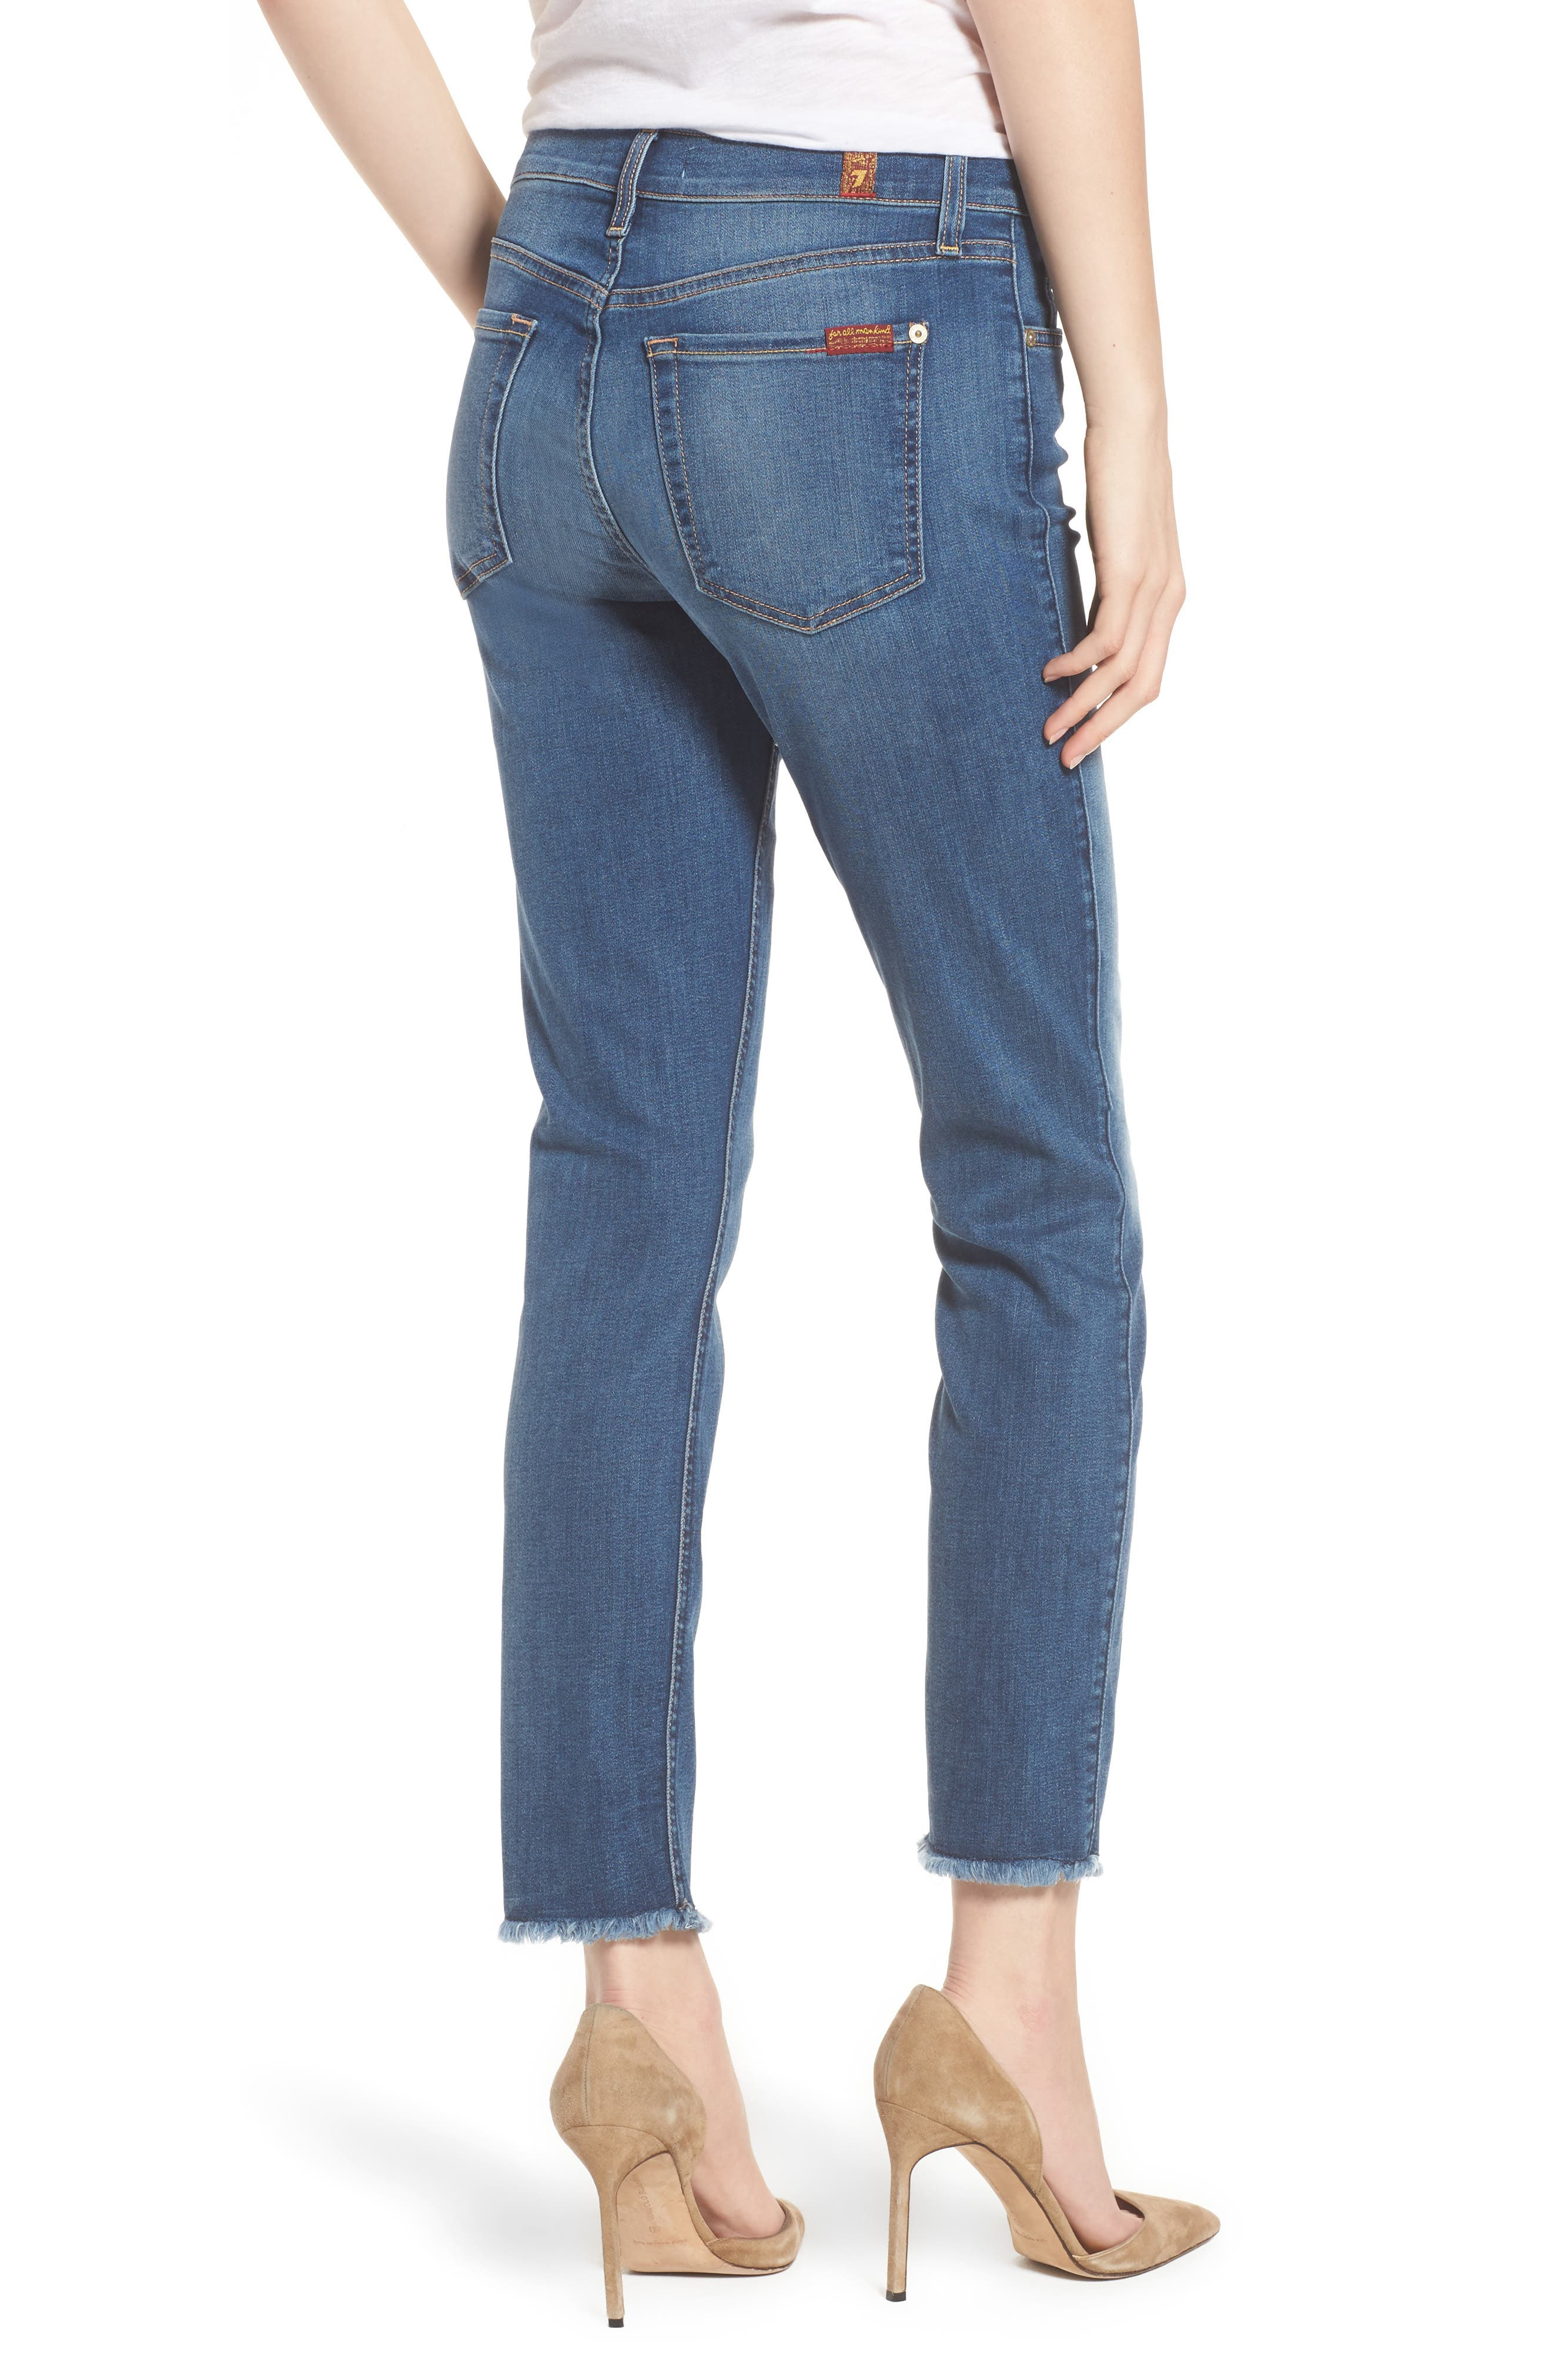 b(air) Roxanne Ankle Straight Leg Jeans,                             Alternate thumbnail 2, color,                             Bair Vintage Dusk